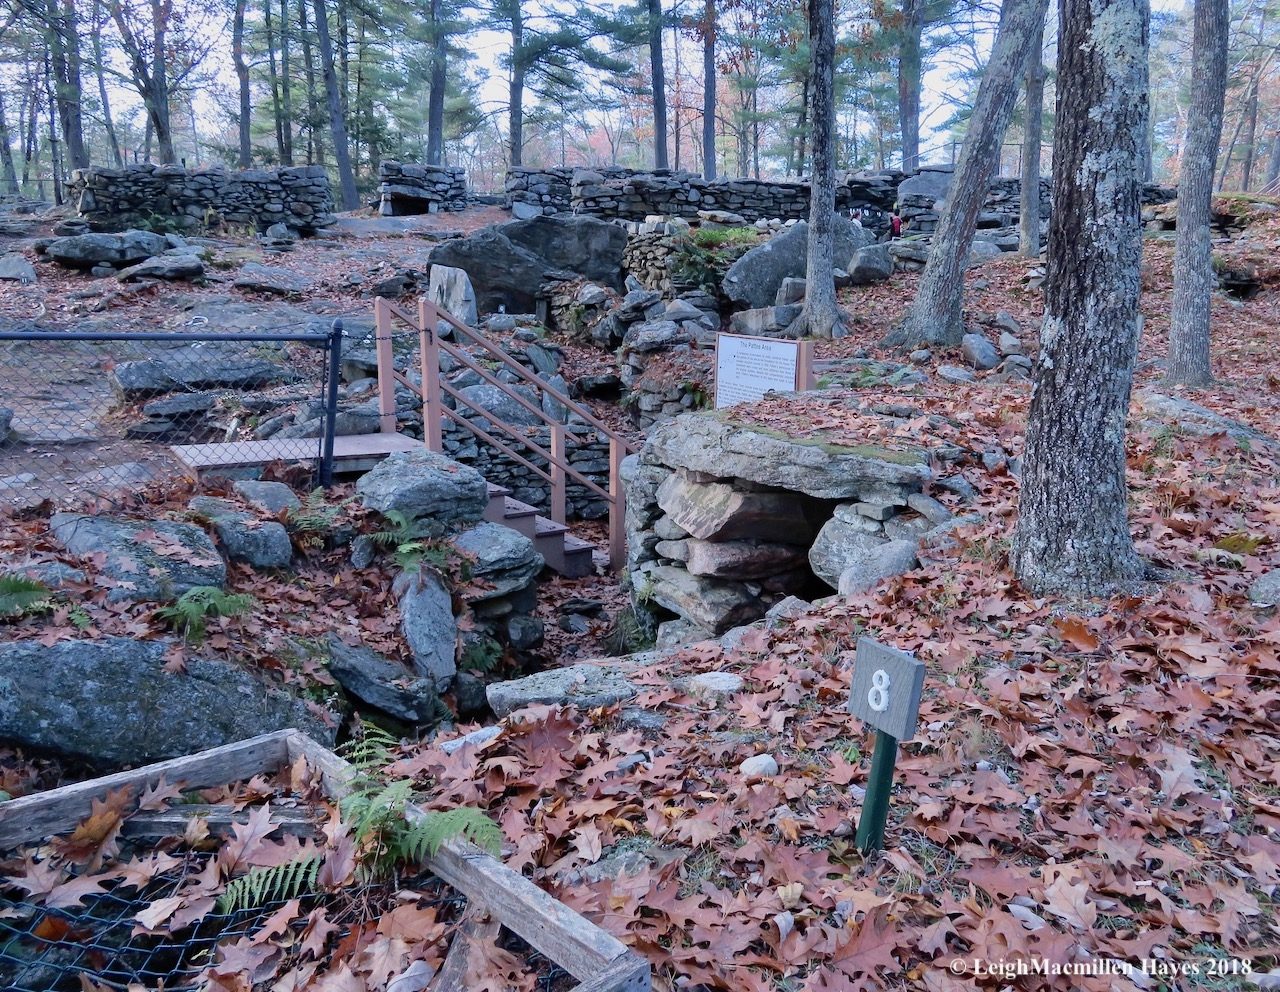 4-Well of crystals, Pattee Area